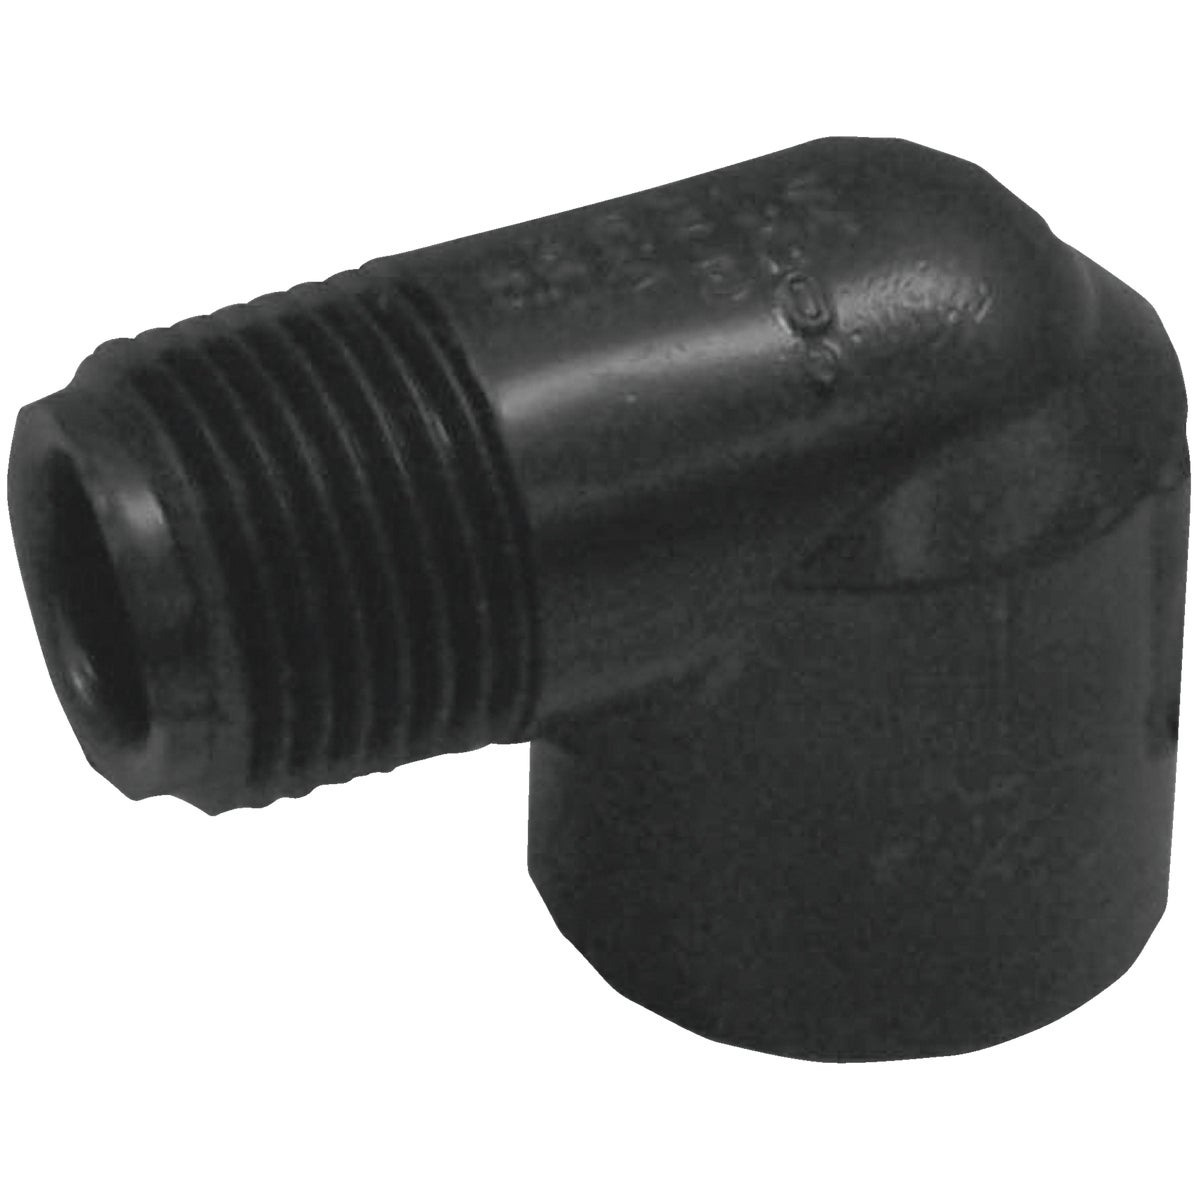 "1/2"" MXF 90D STR ELBOW"